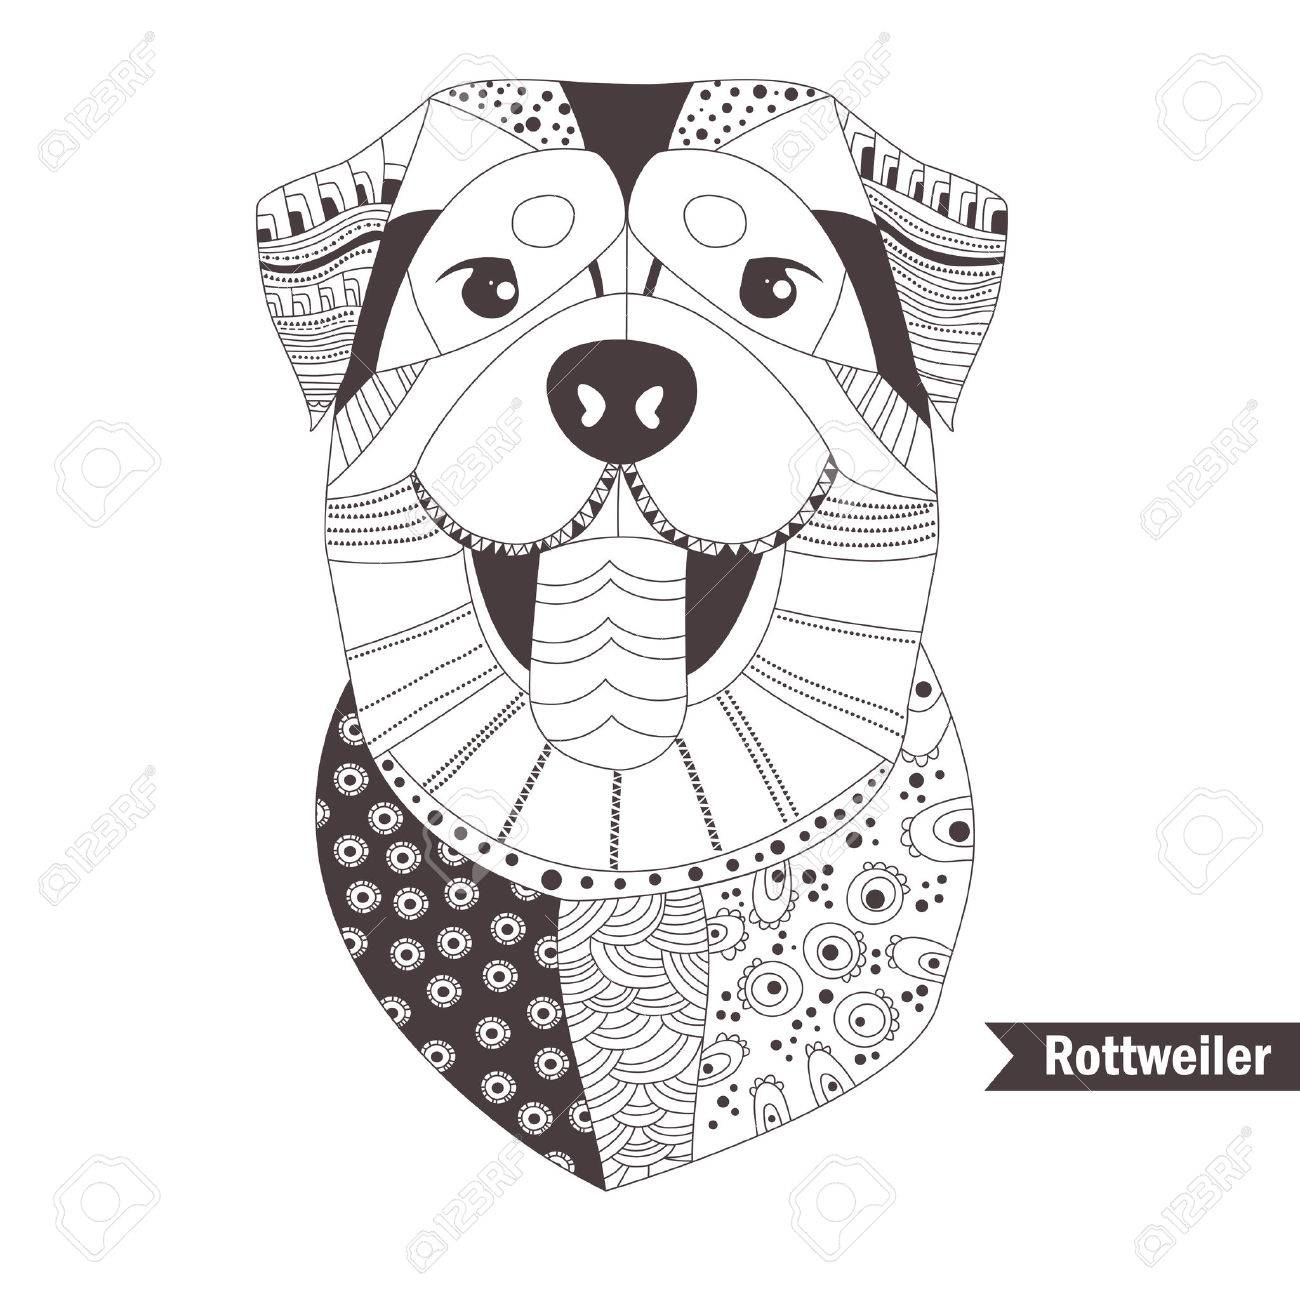 Rottweiler Coloring Book For Adult Antistress Coloring Pages